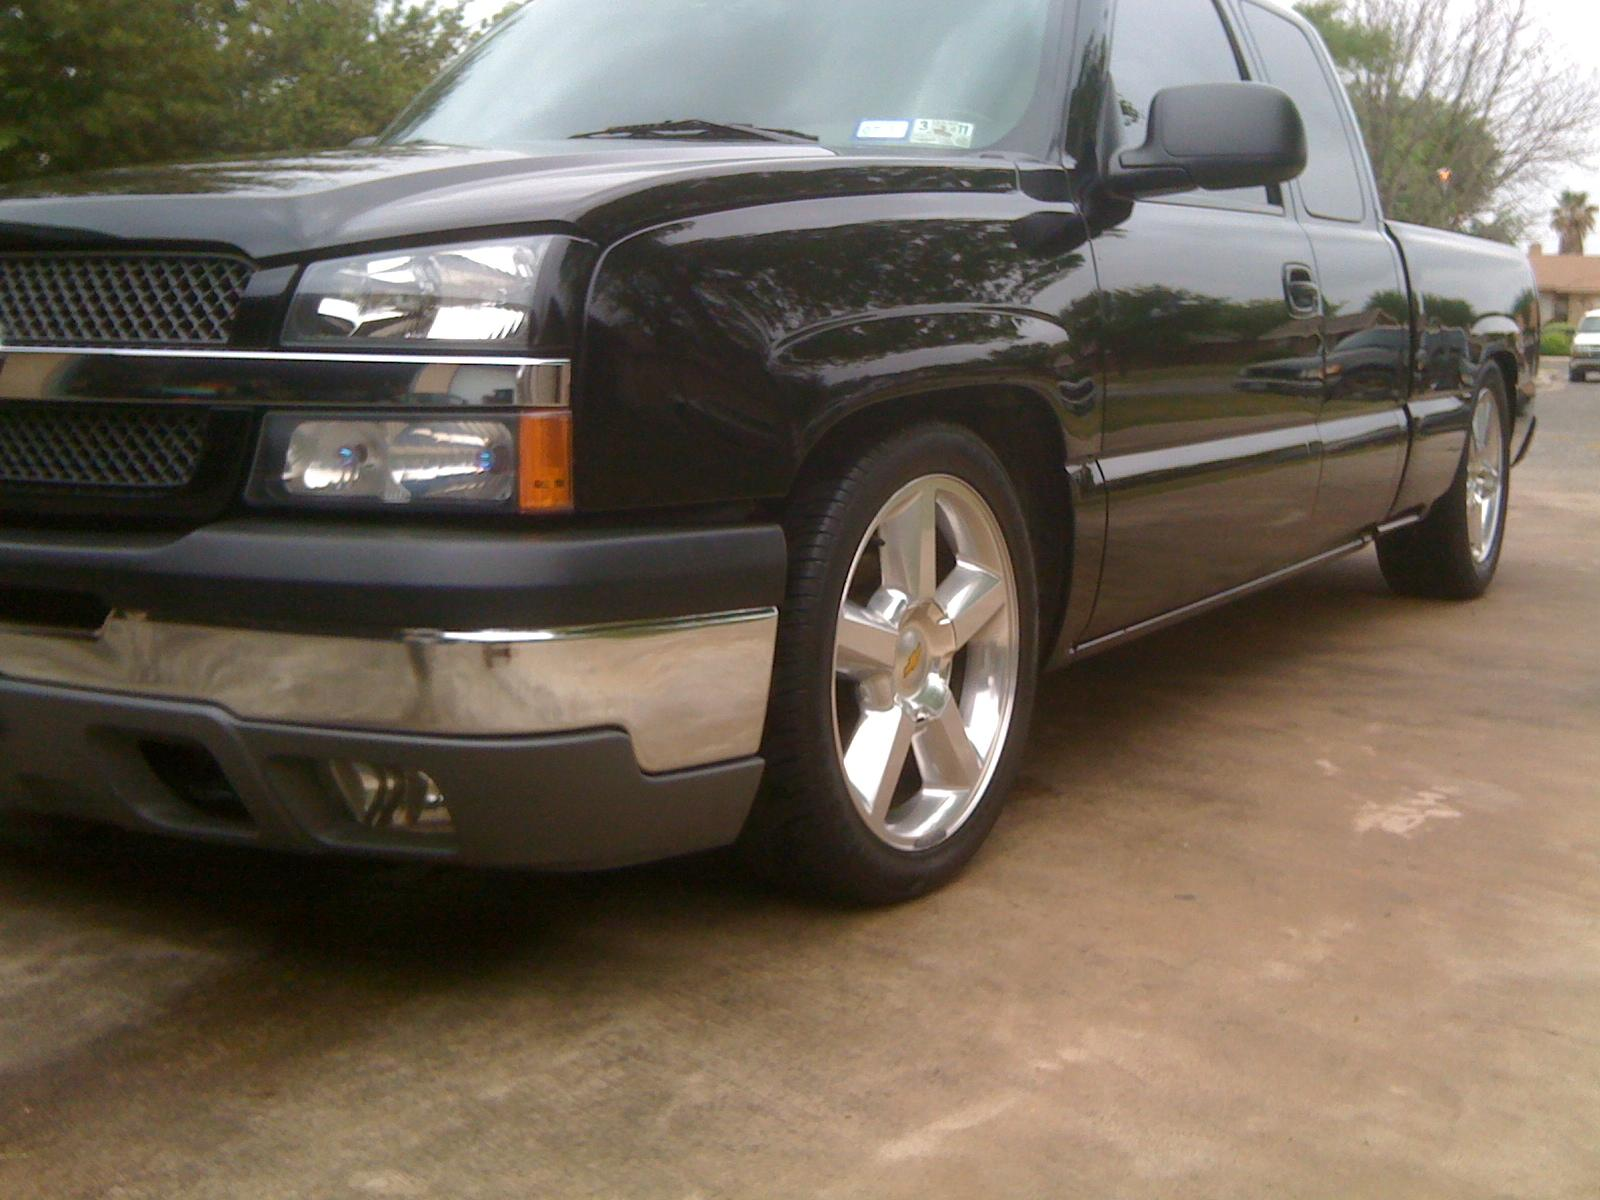 04blkonblk 2004 chevrolet silverado 1500 extended cabls. Black Bedroom Furniture Sets. Home Design Ideas